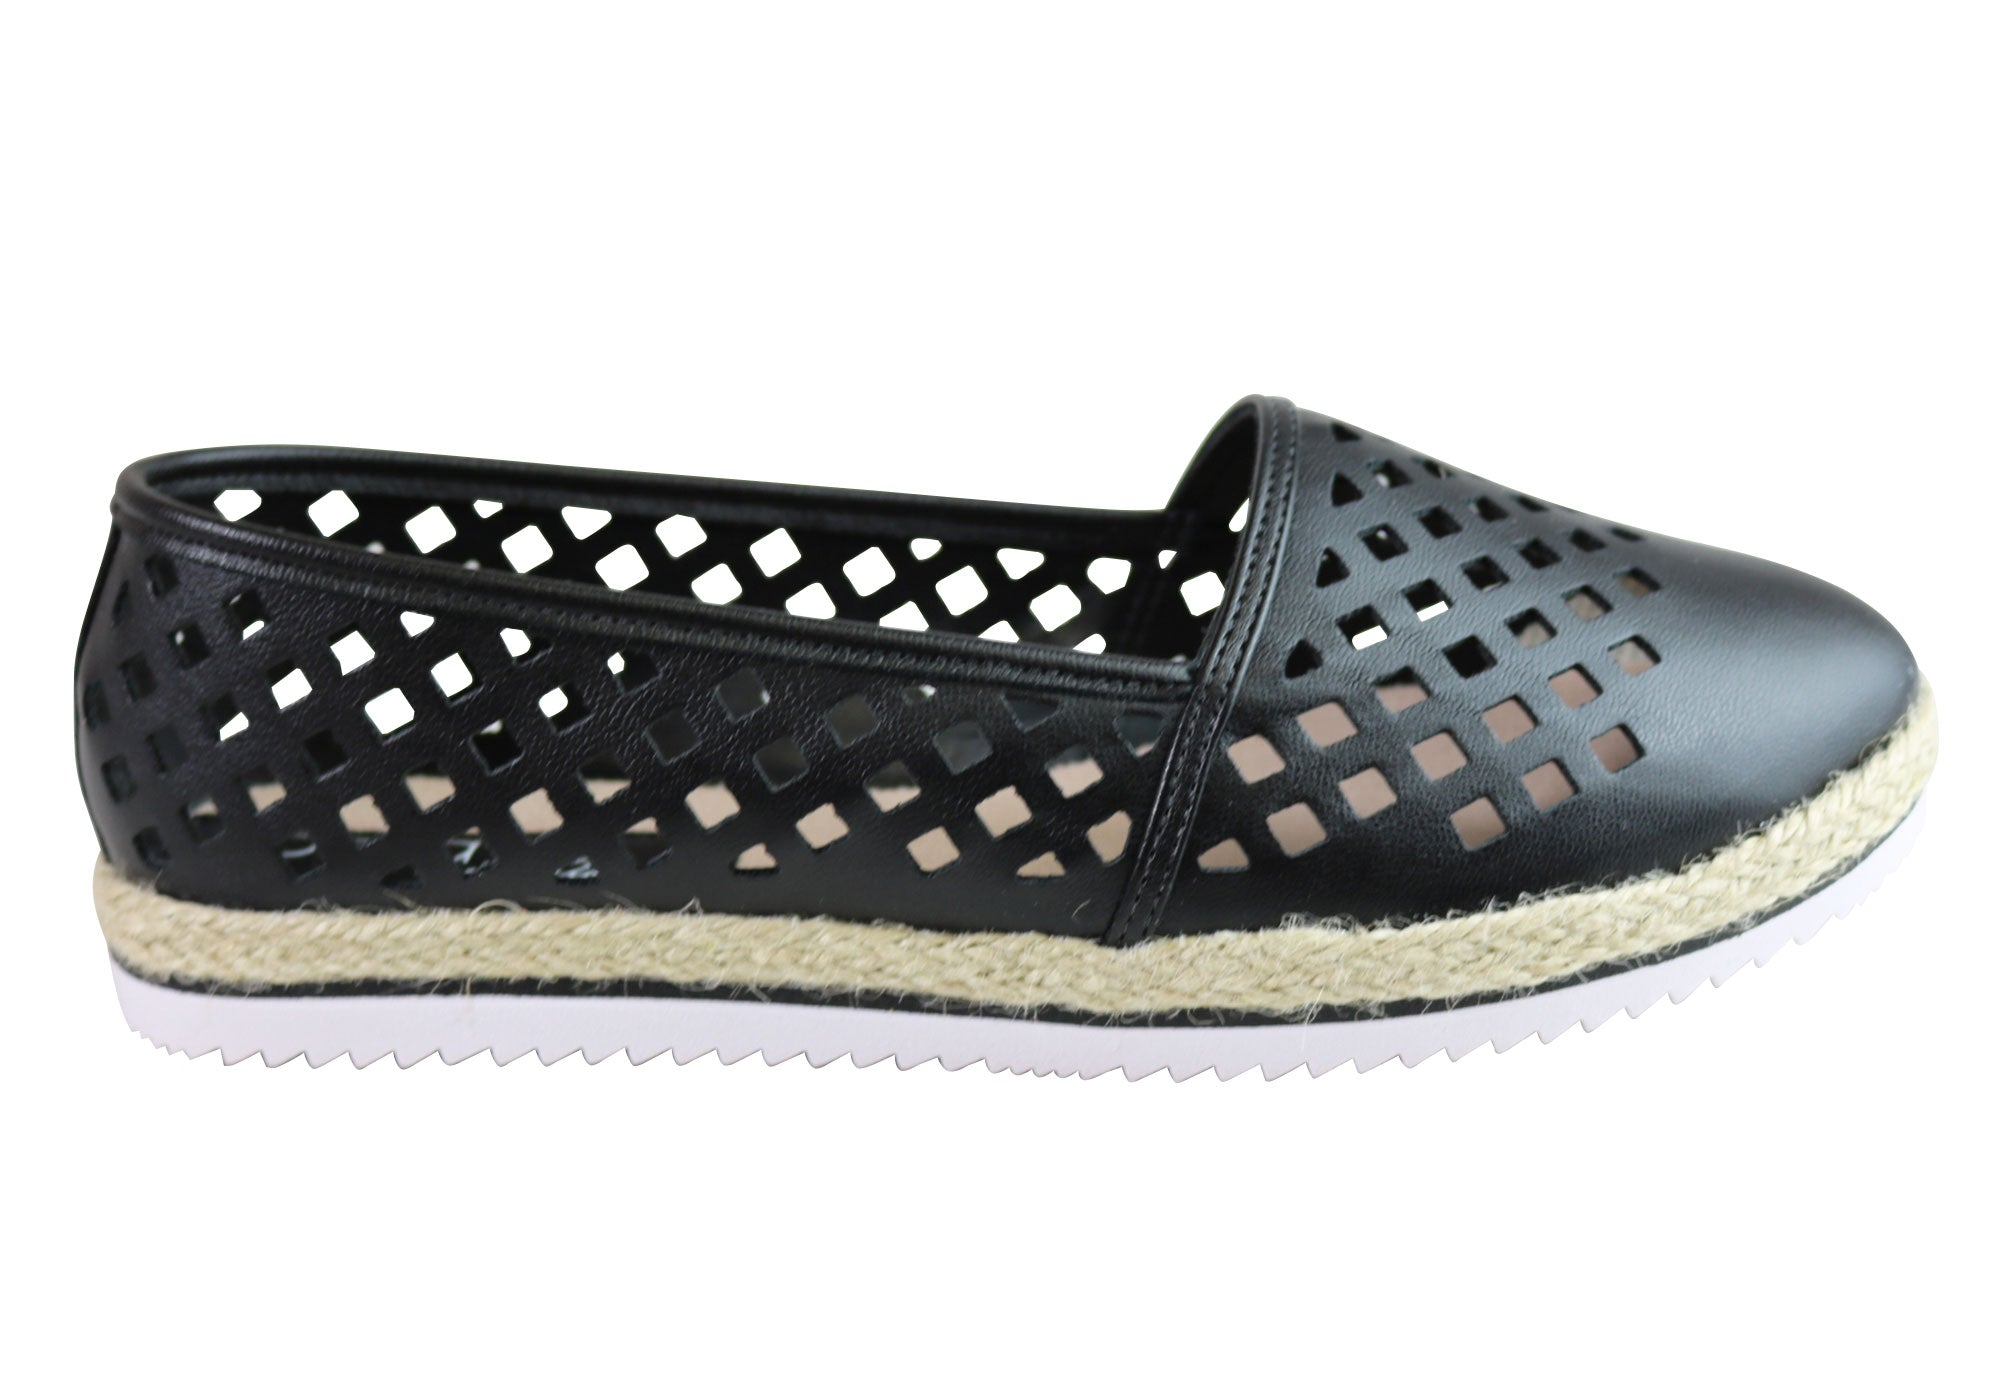 Beira Rio Fashion Conforto Kandice Donna Comfortable Espadrille Fashion Rio Shoes e4586e